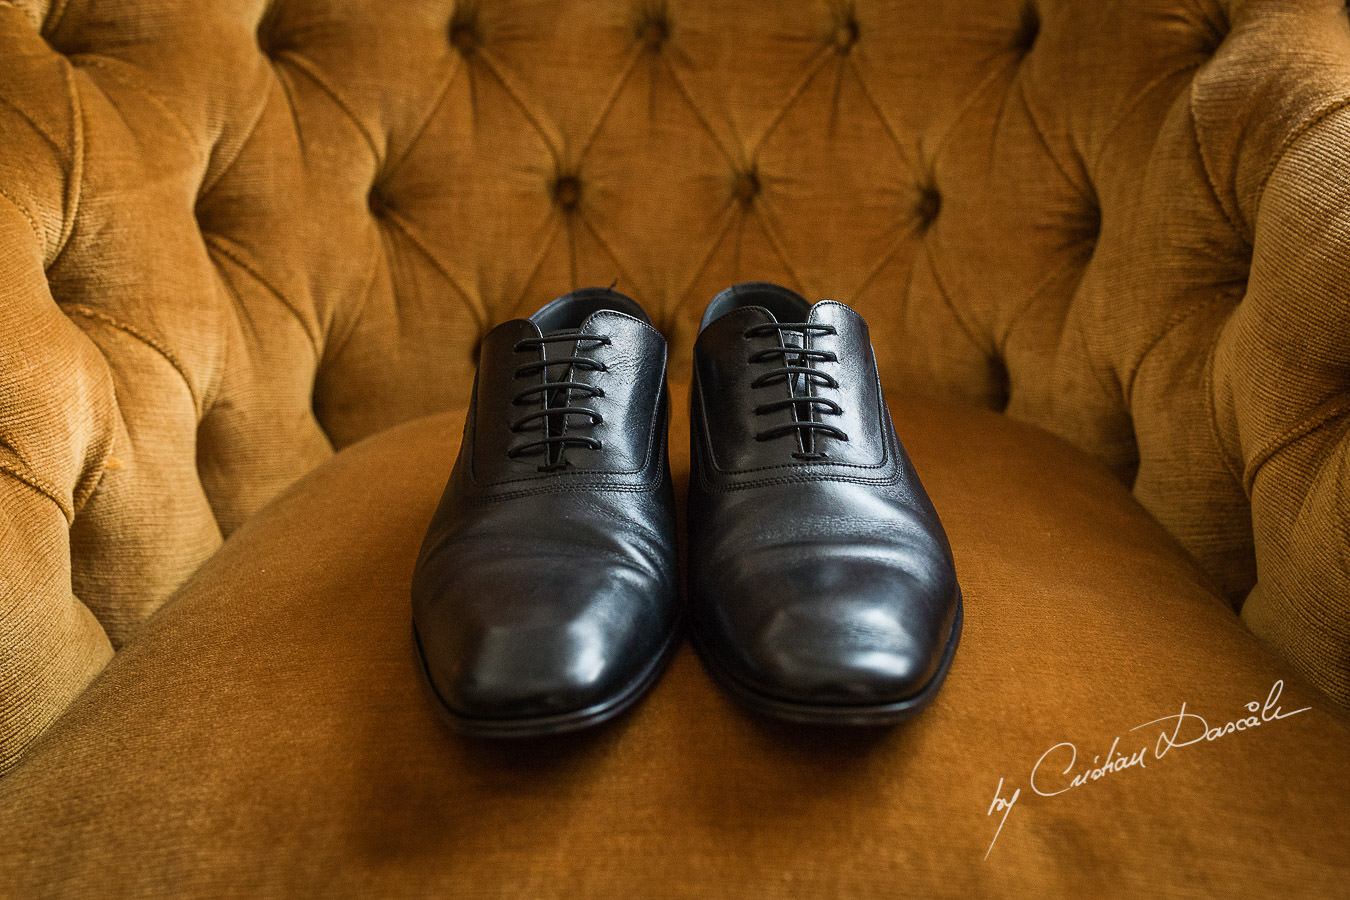 Groom's shoes captured at a wedding in Cyprus by Photographer Cristian Dascalu.